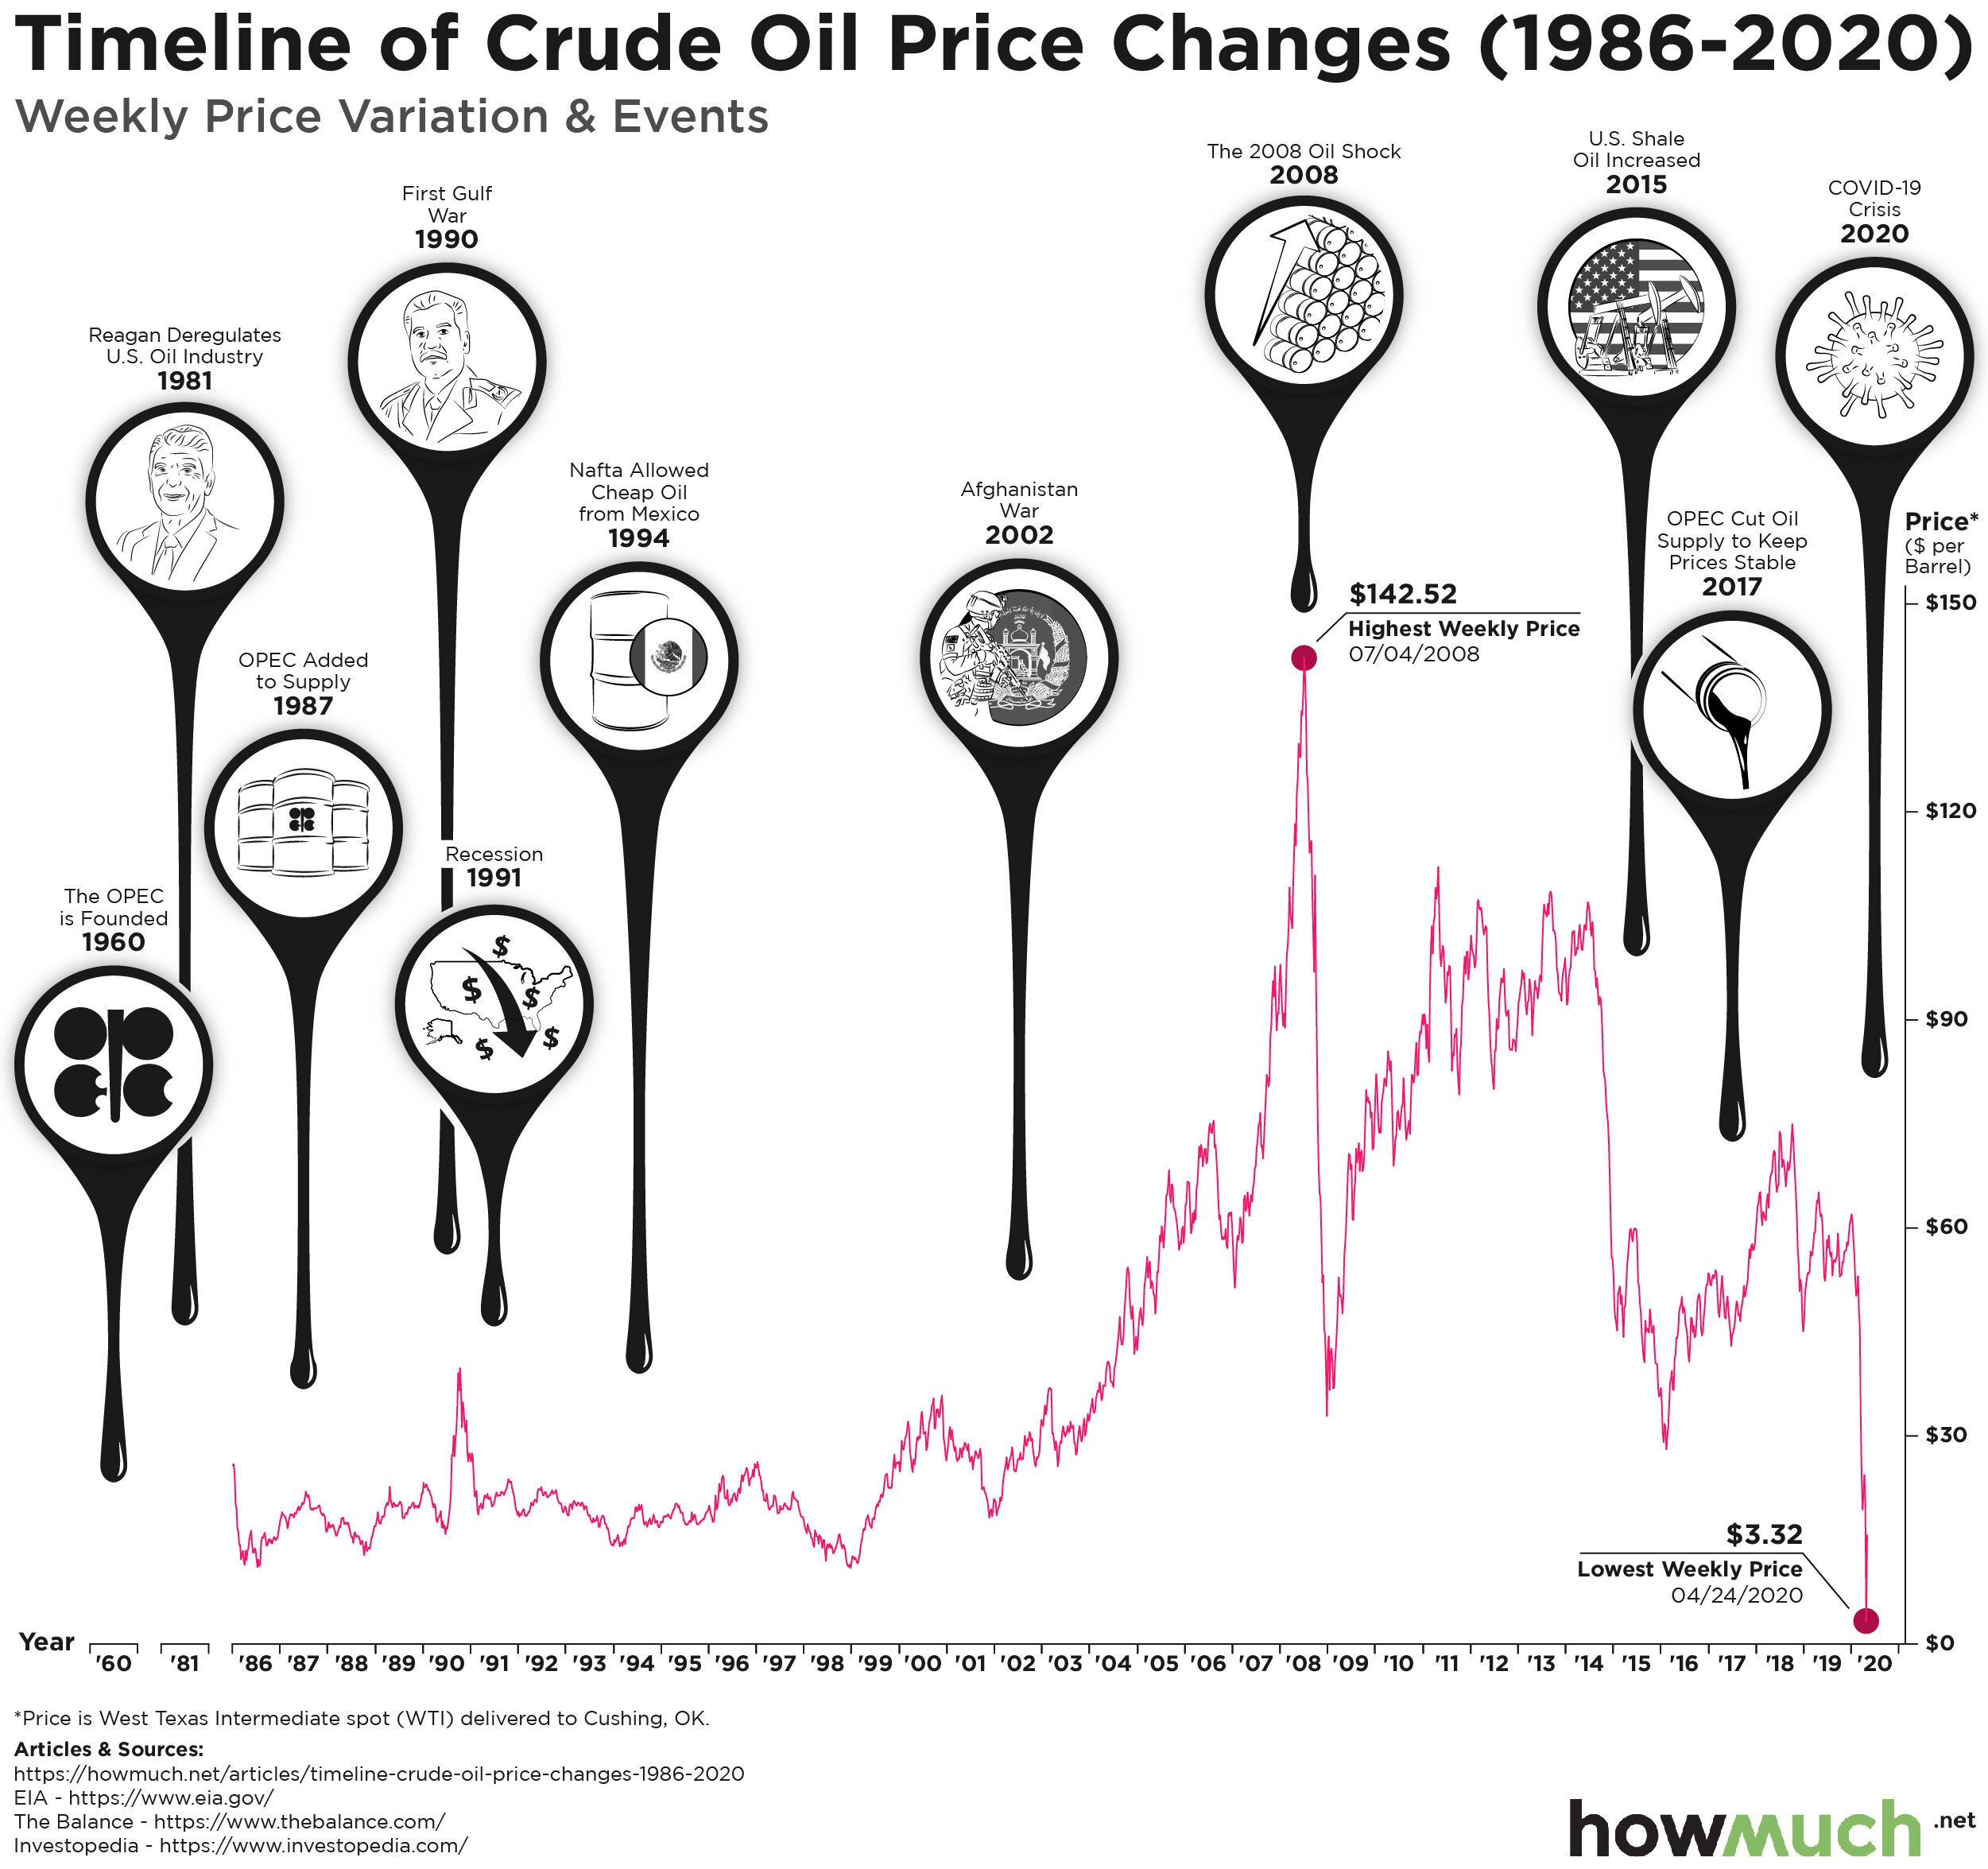 https://cdn.howmuch.net/articles/Timeline-of-Crude-Oil-Price-Changes-%281986-2020%29-v4-0ce2.jpg